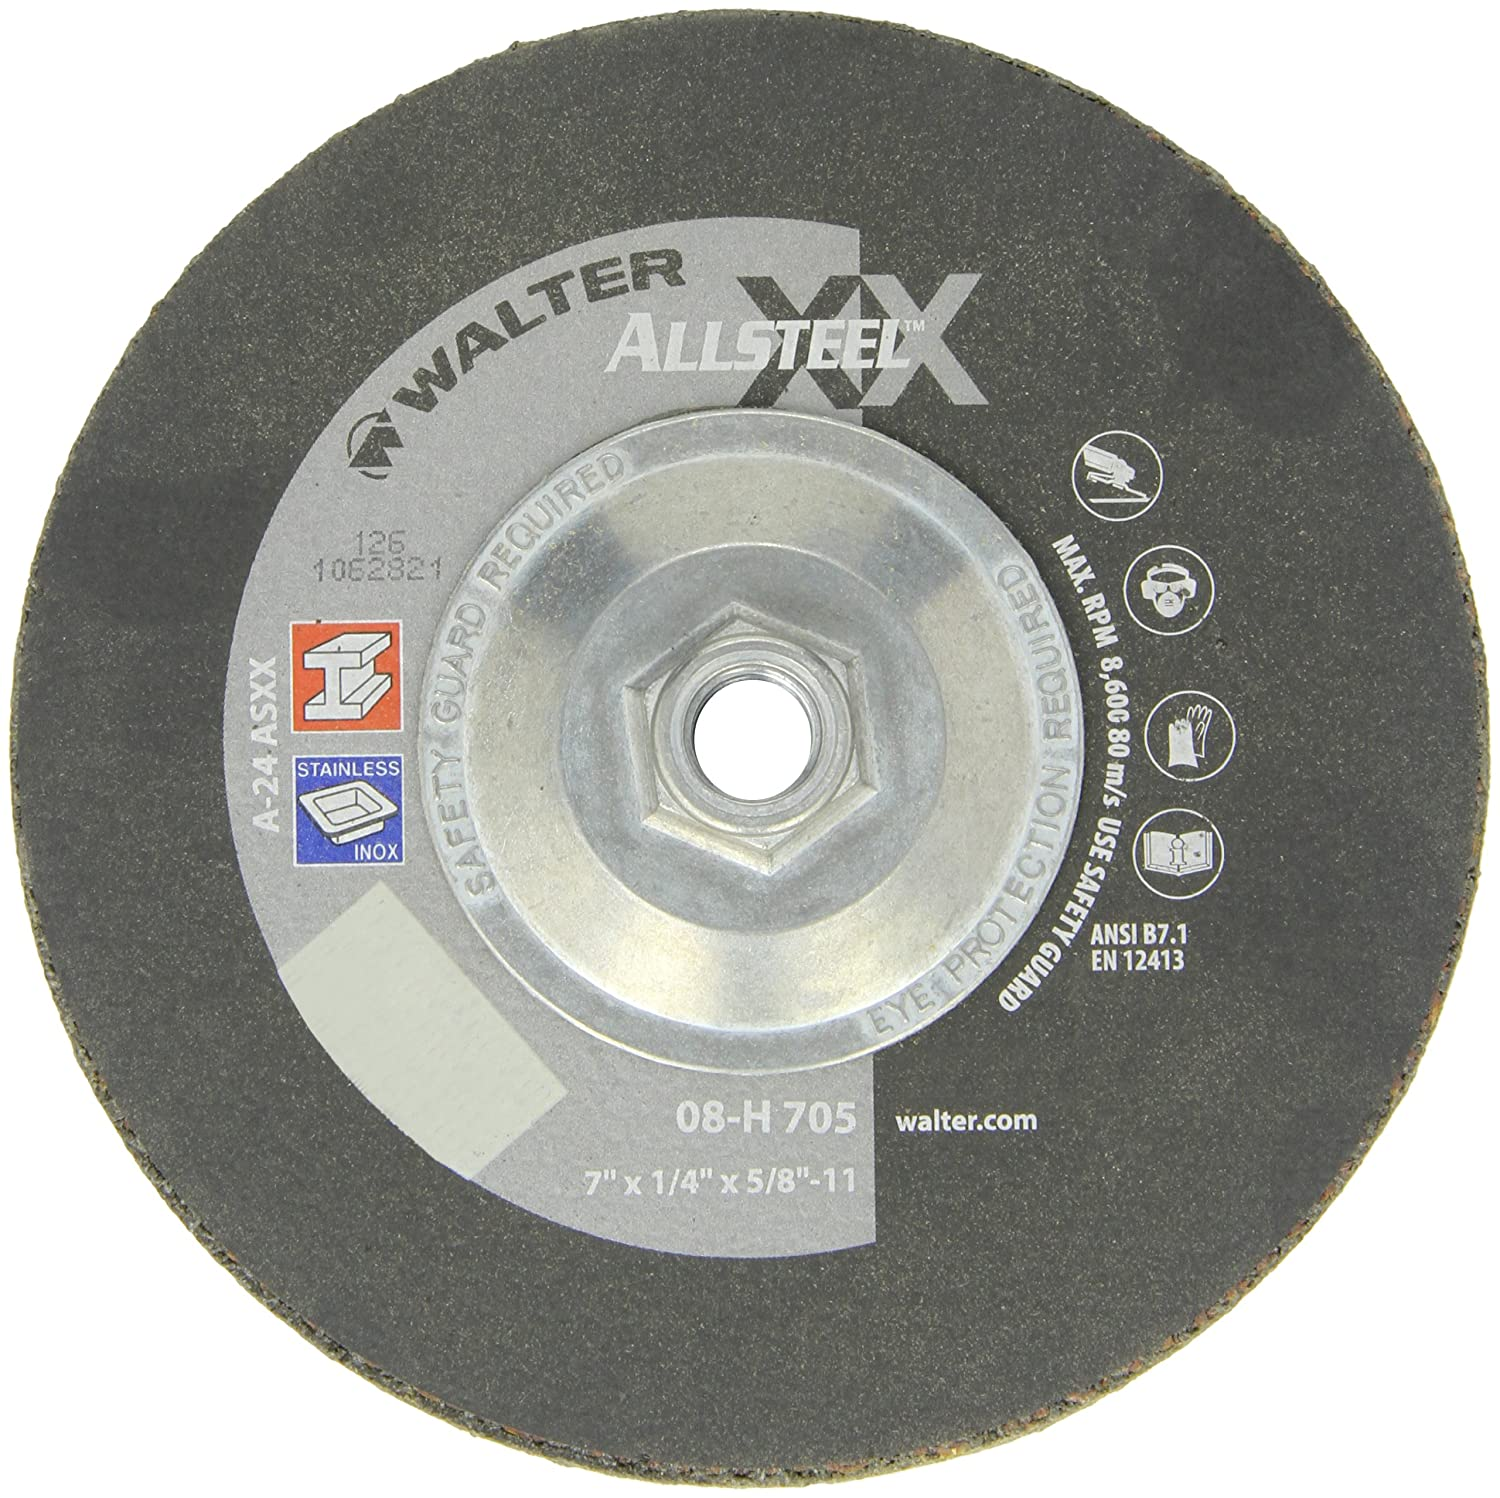 Surface Finishing Wheels Walter Surface Technologies A-24-AXX Grit Walter 08H705 ALLSTEEL XX Exceptional Grinding Wheel - Pack of 10 Aluminum Oxide Abrasive Wheel 7 in